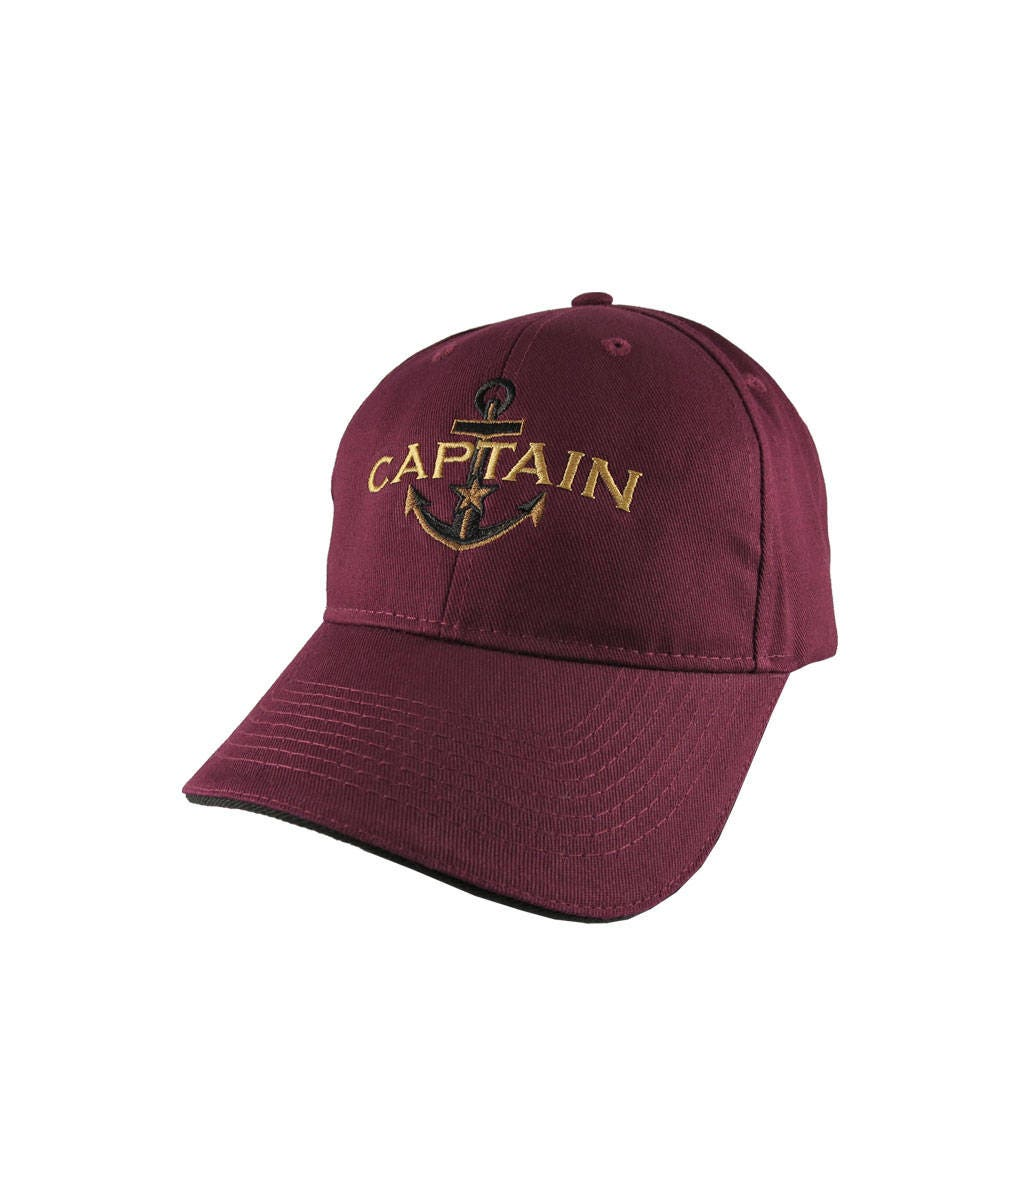 7230b8f48 Personalized Captain Star Anchor Embroidery Adjustable Burgundy and ...